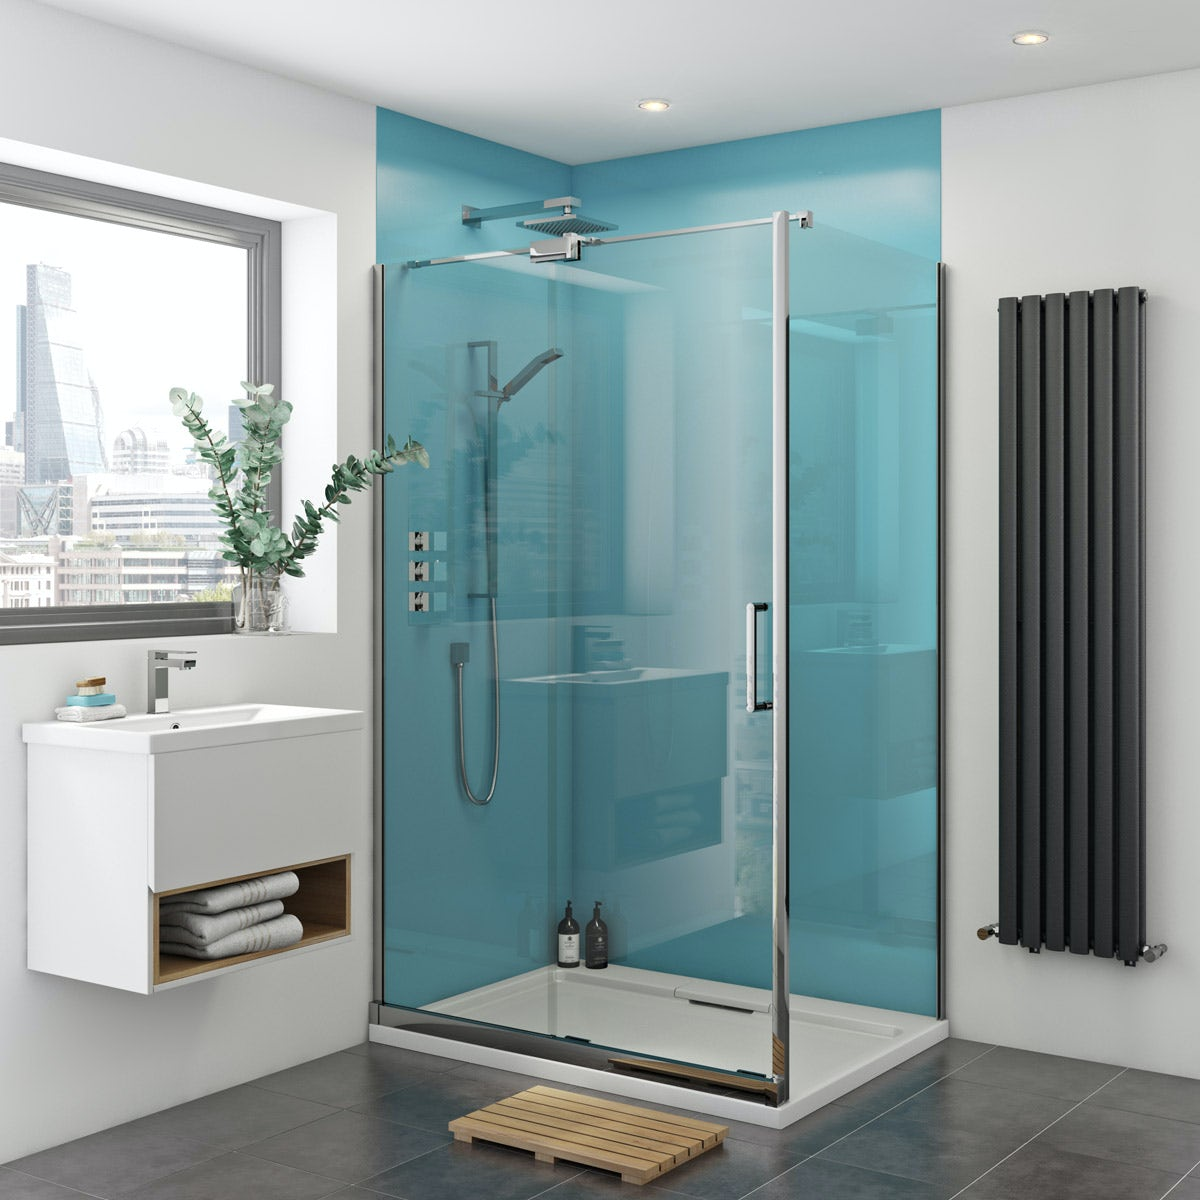 zenolite plus water acrylic shower wall panel 2440 x 1000. Black Bedroom Furniture Sets. Home Design Ideas